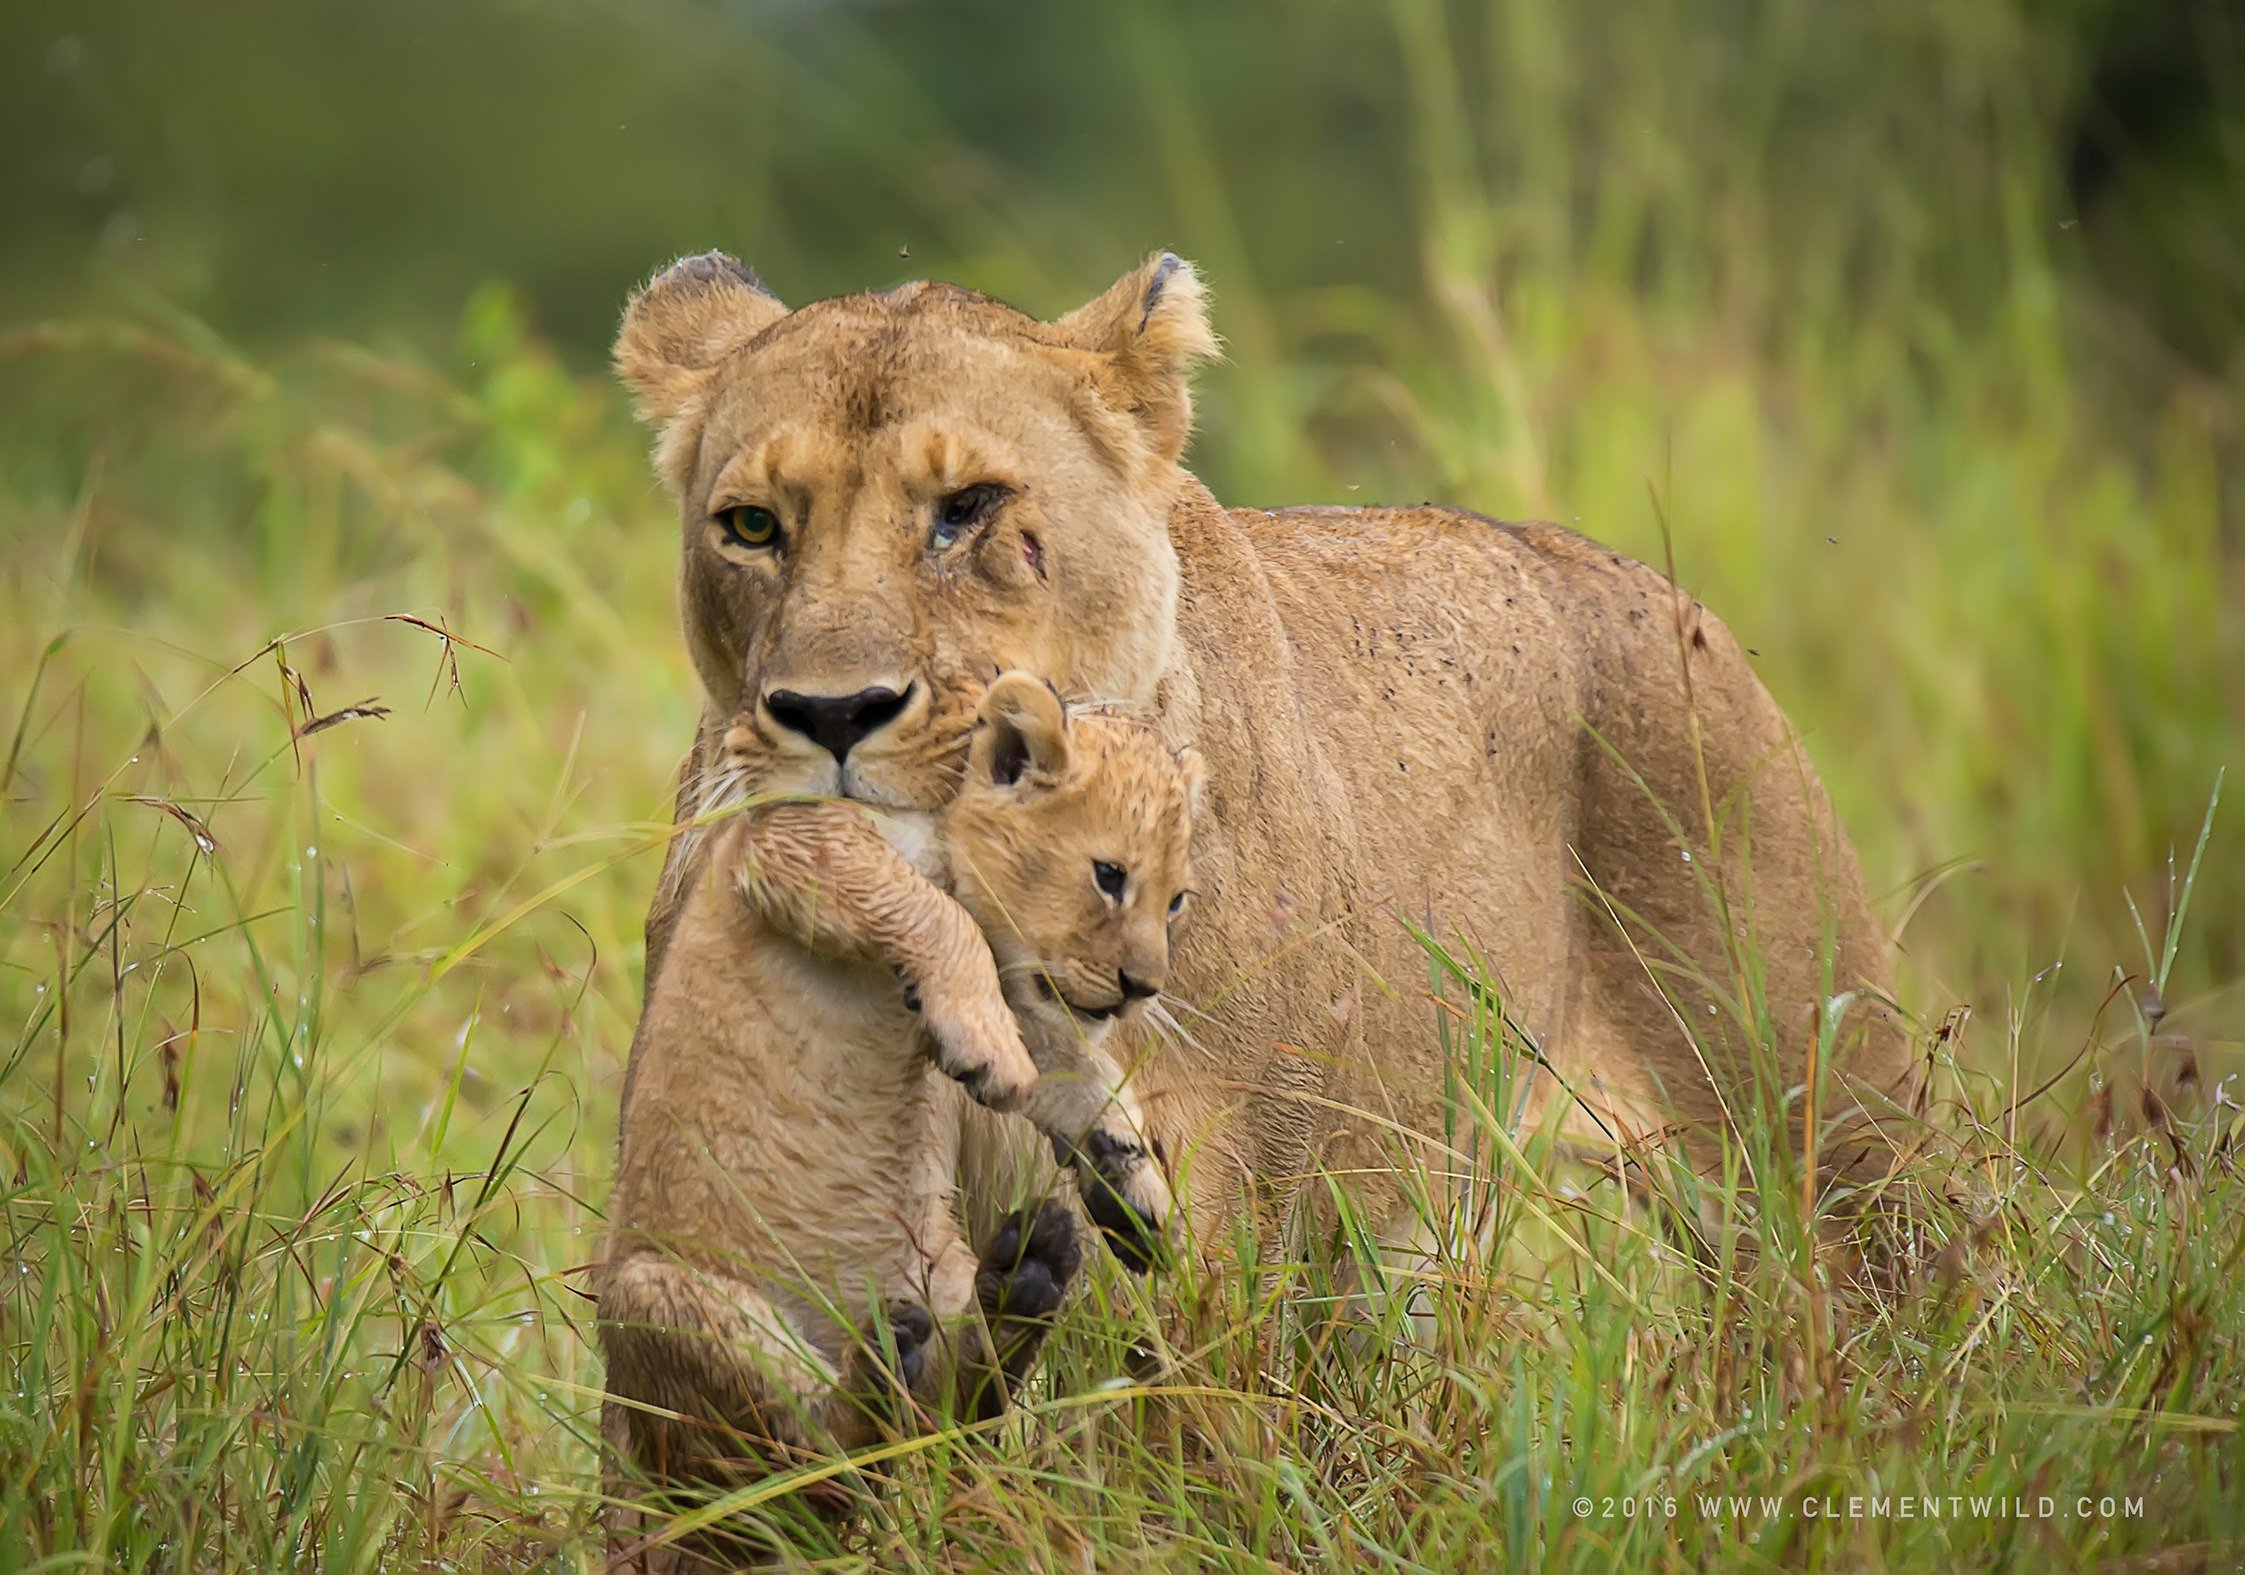 Wildlife Photography, Photographic Safaris, Clement Wild, Masai Mara, Big Cats, Lions